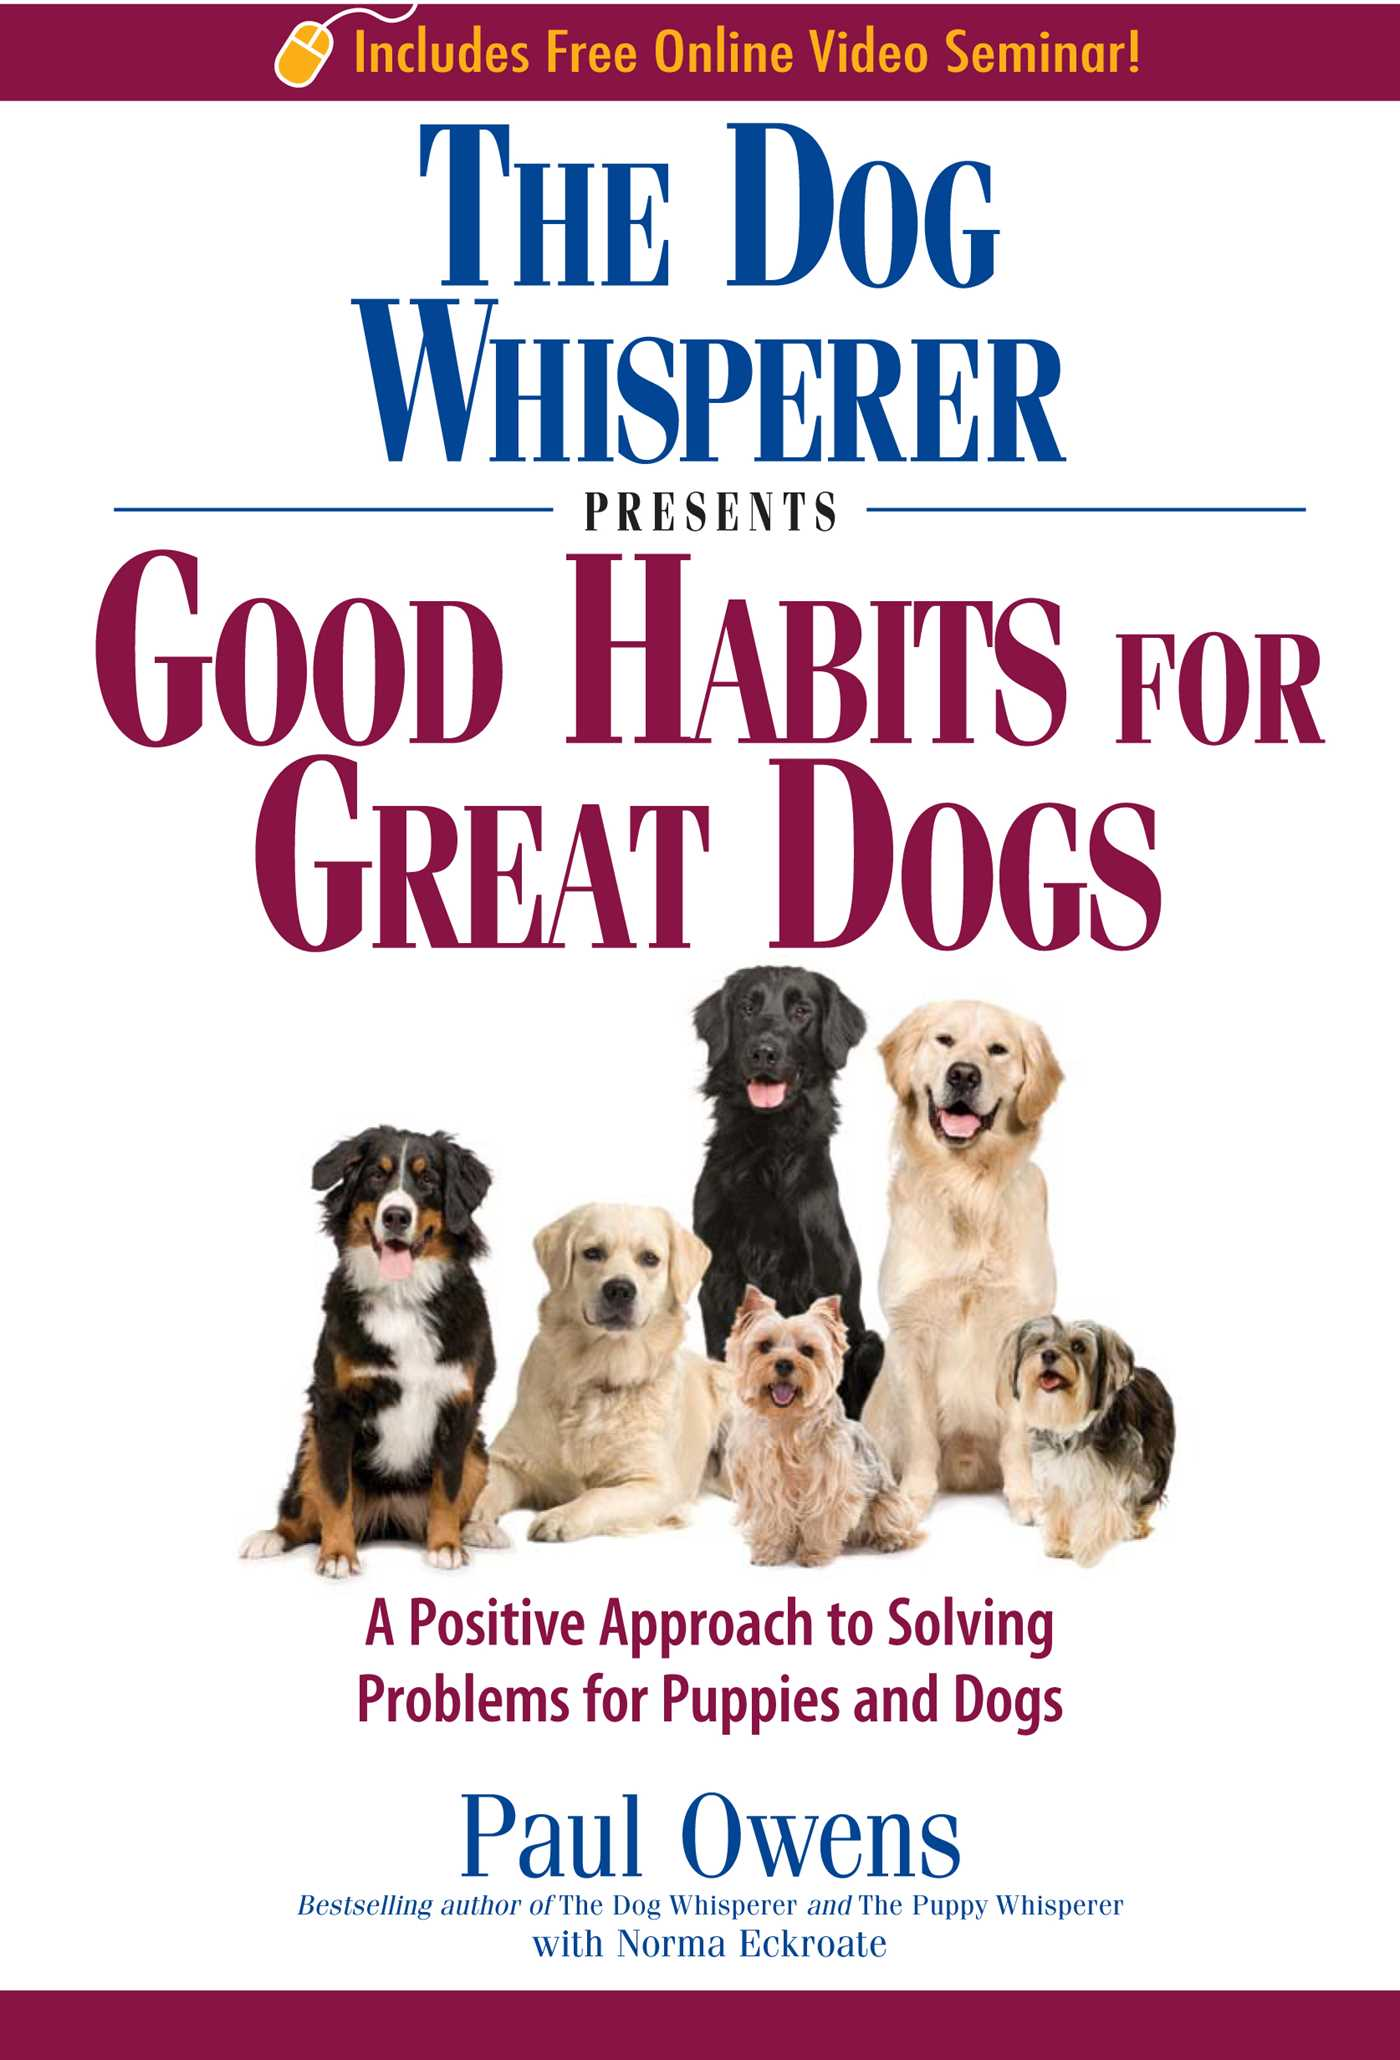 The dog whisperer presents good habits for great dogs 9781440503214 hr